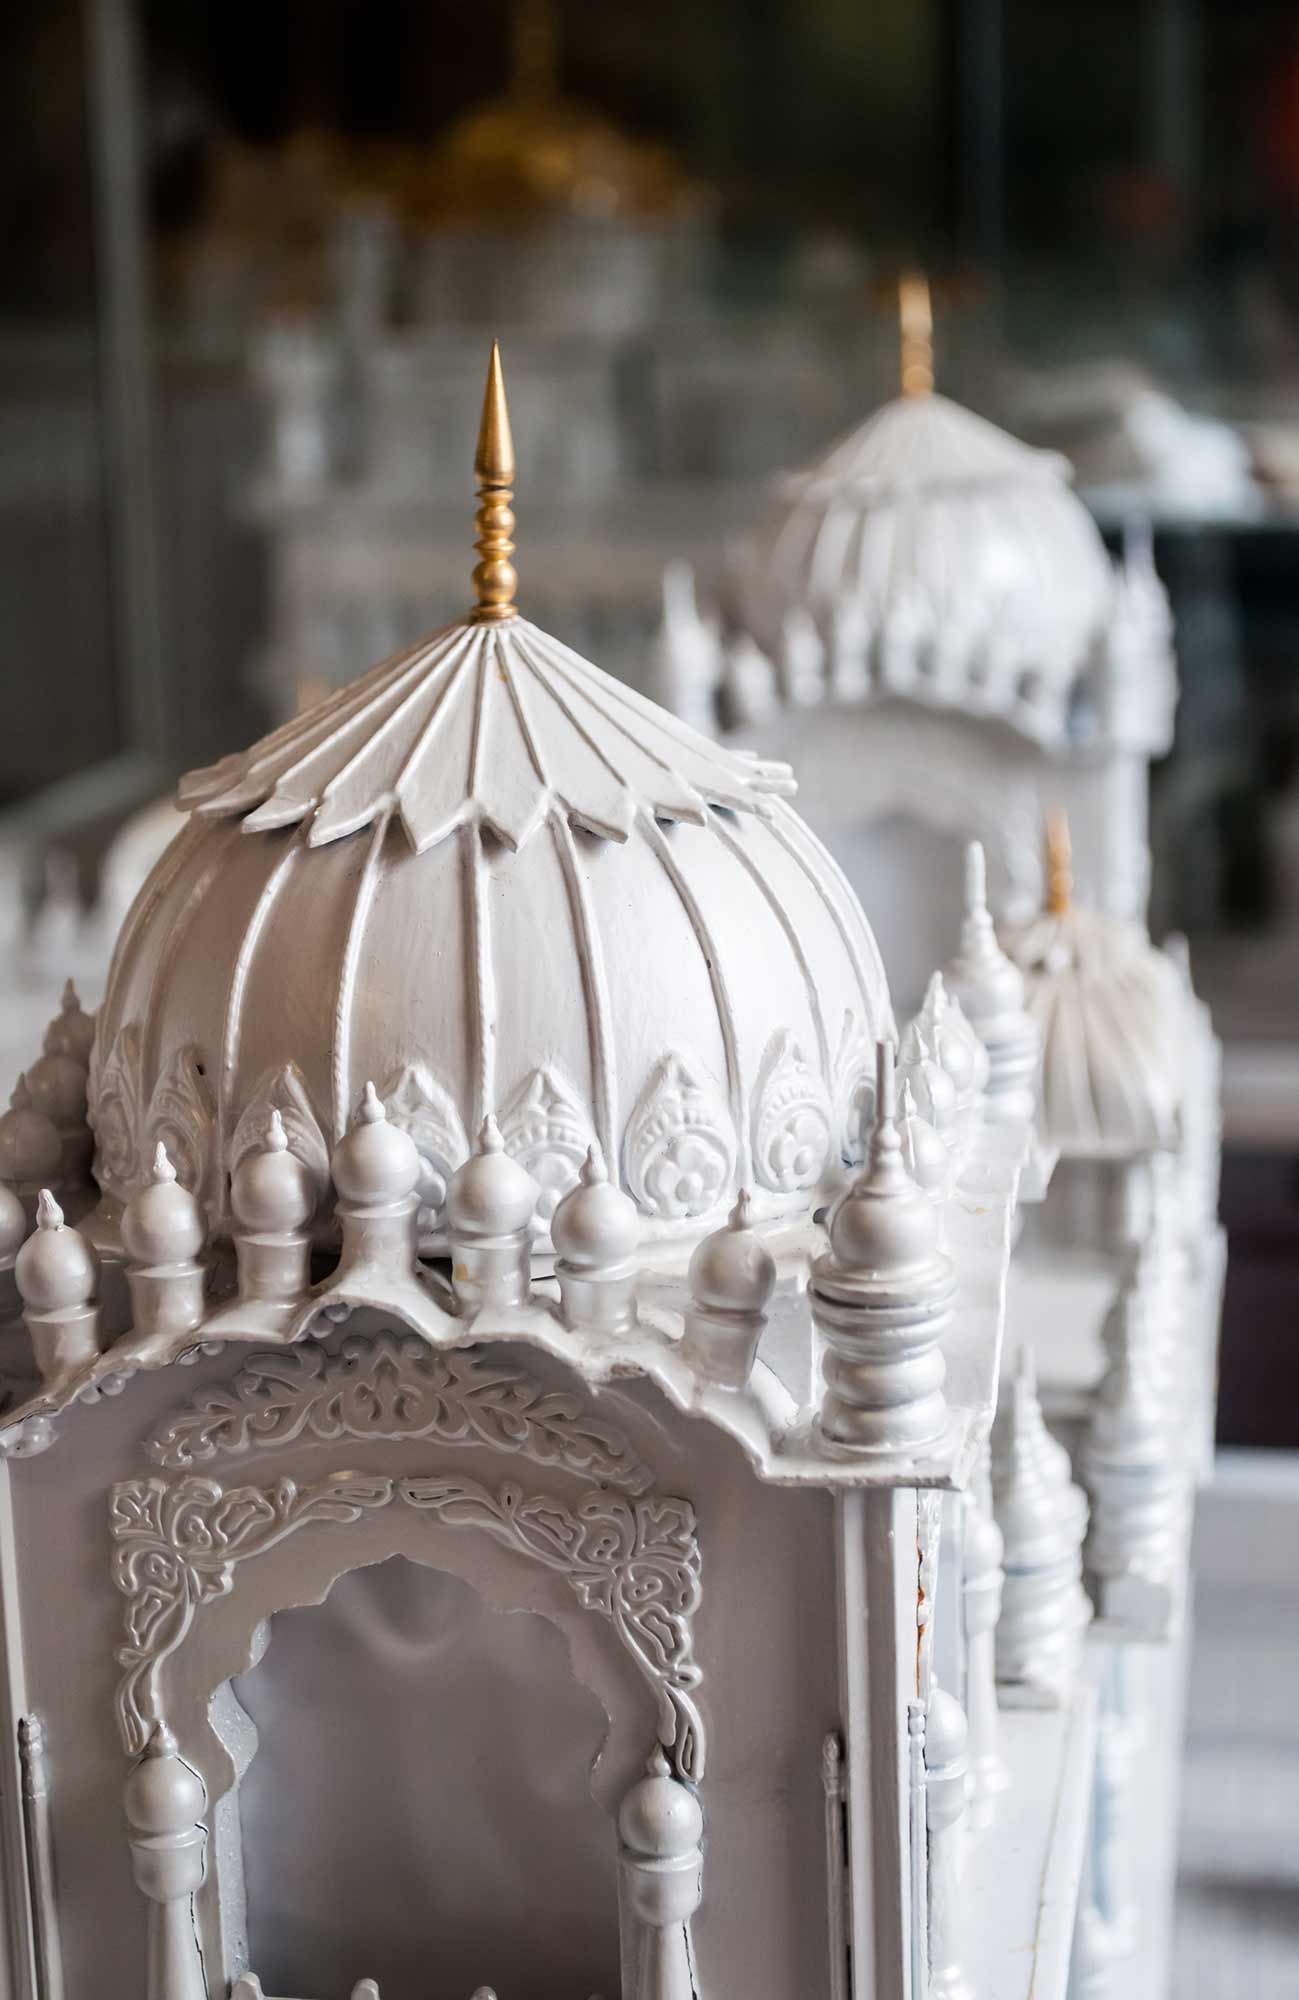 Items on display in the museum -